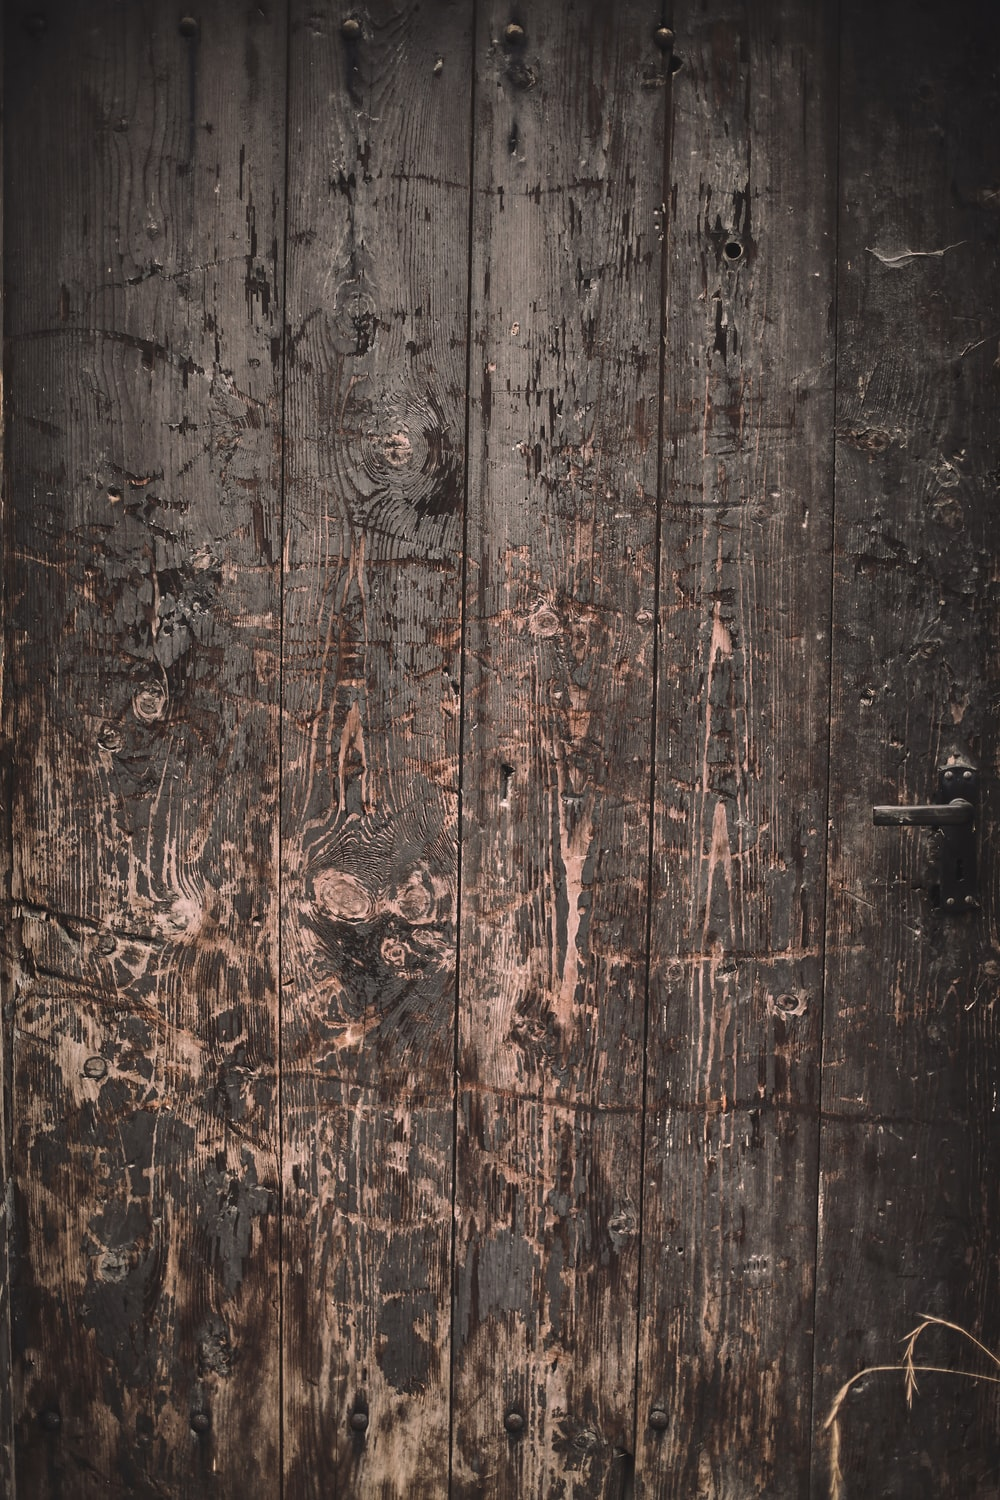 brown and black wooden surface